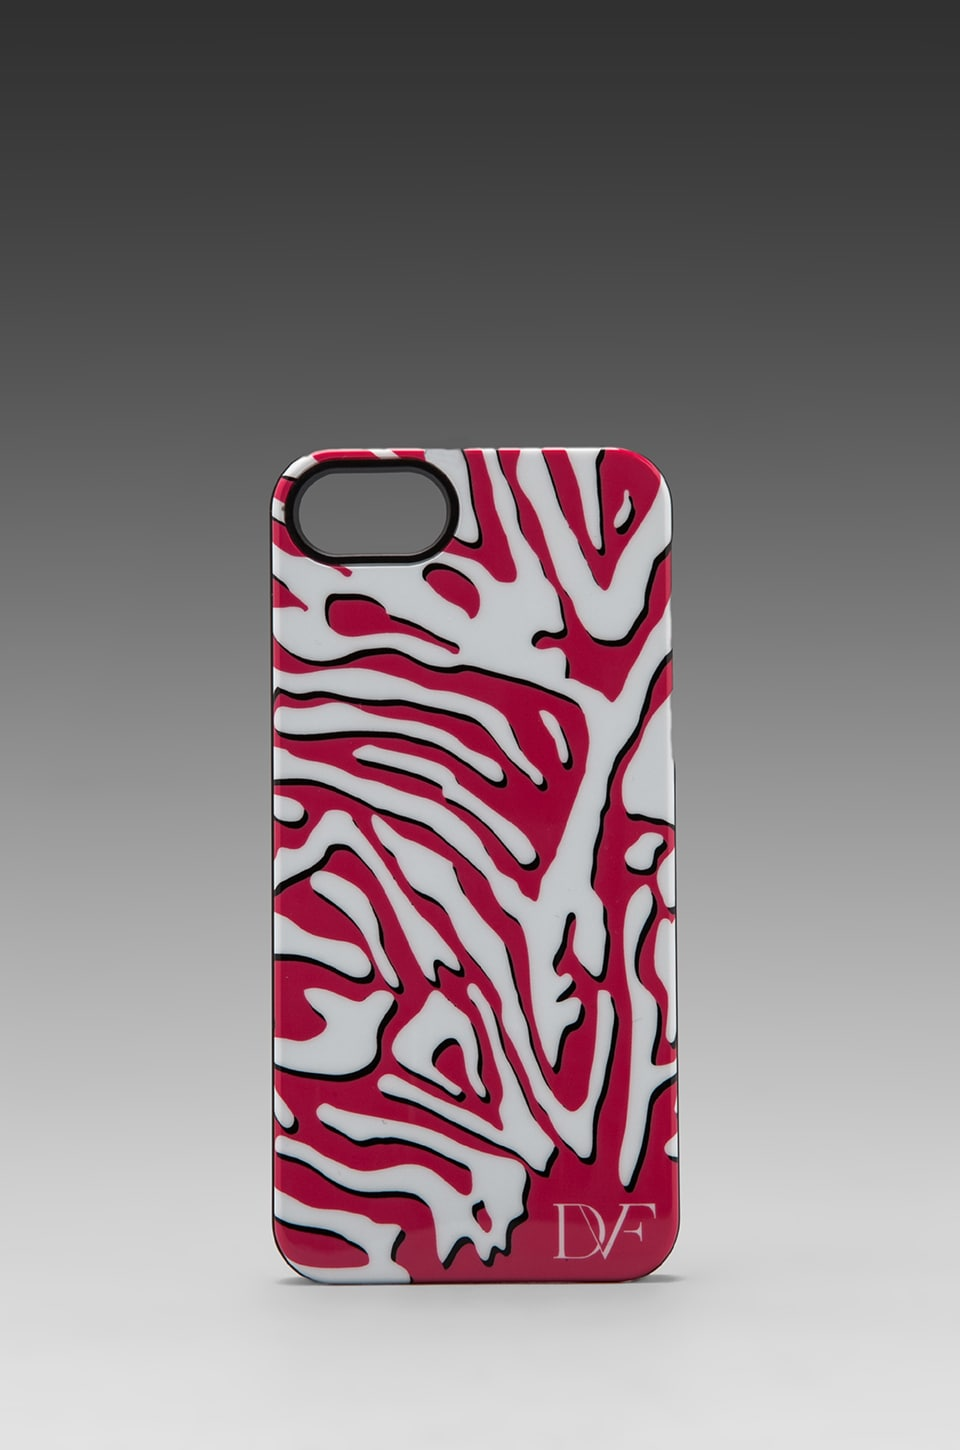 Diane von Furstenberg Iphone 5 Case in Zebra Shadow Pink/White